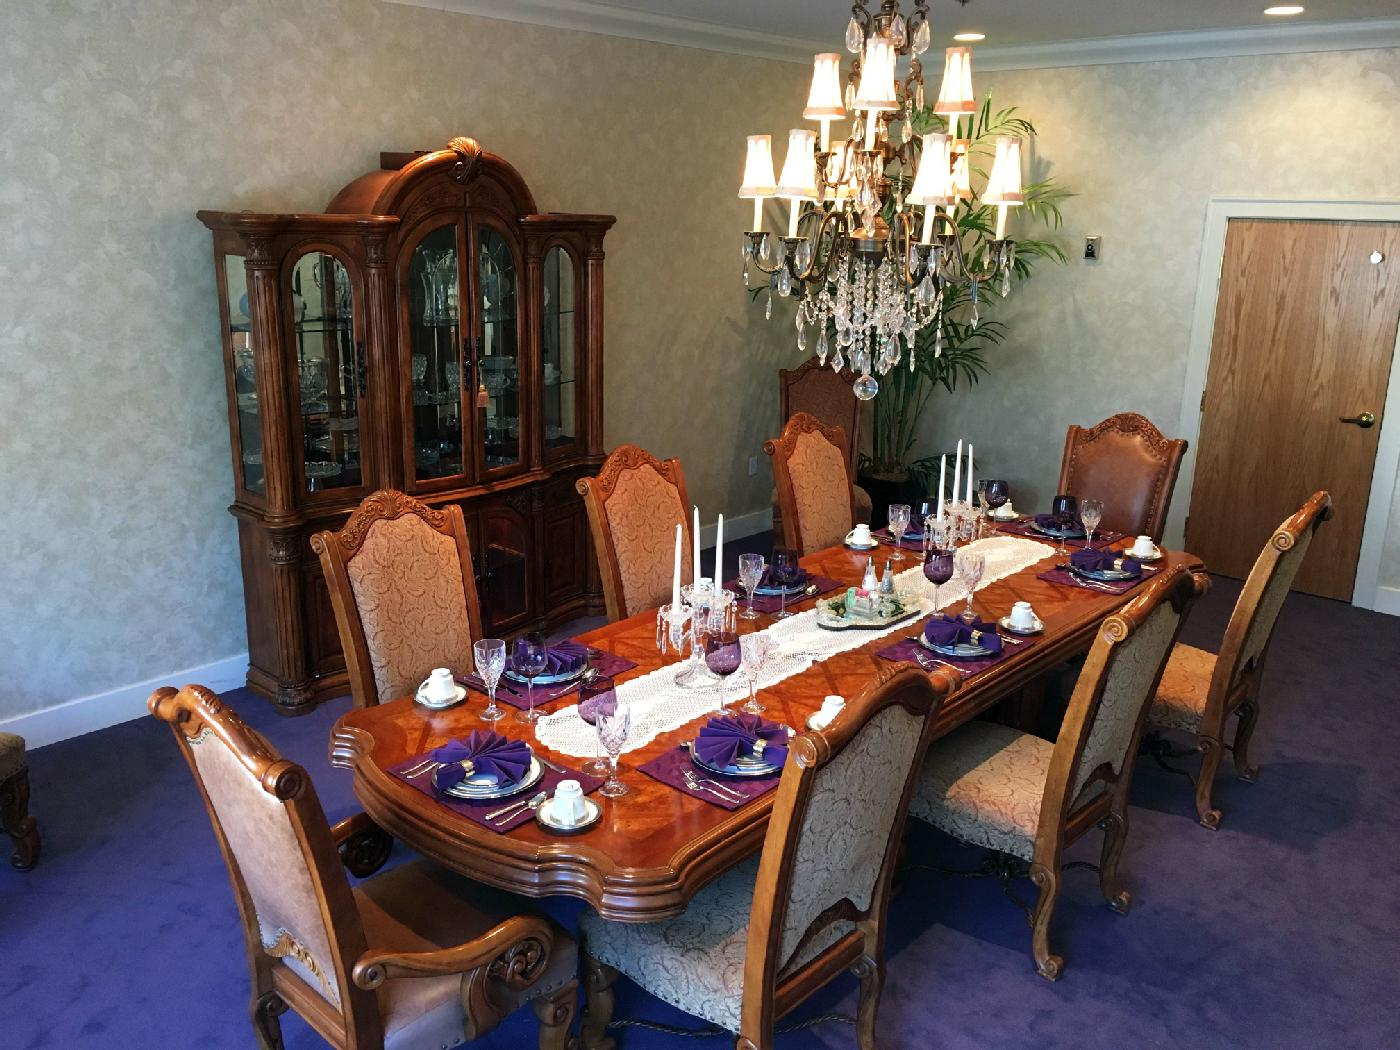 Private Dining Room at Whispering Winds